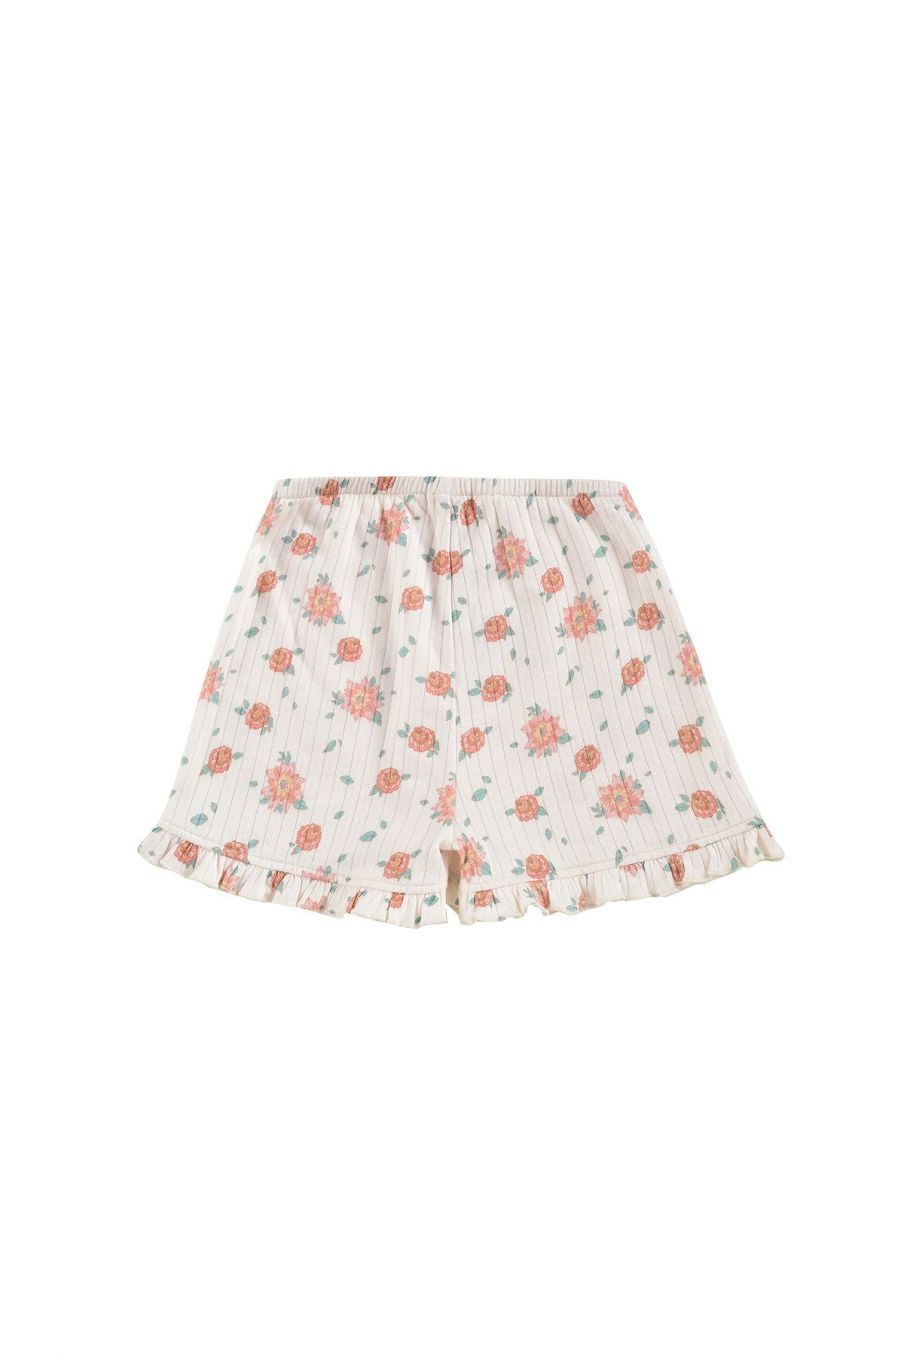 boheme chic vintage short fille anchi off-white flowers